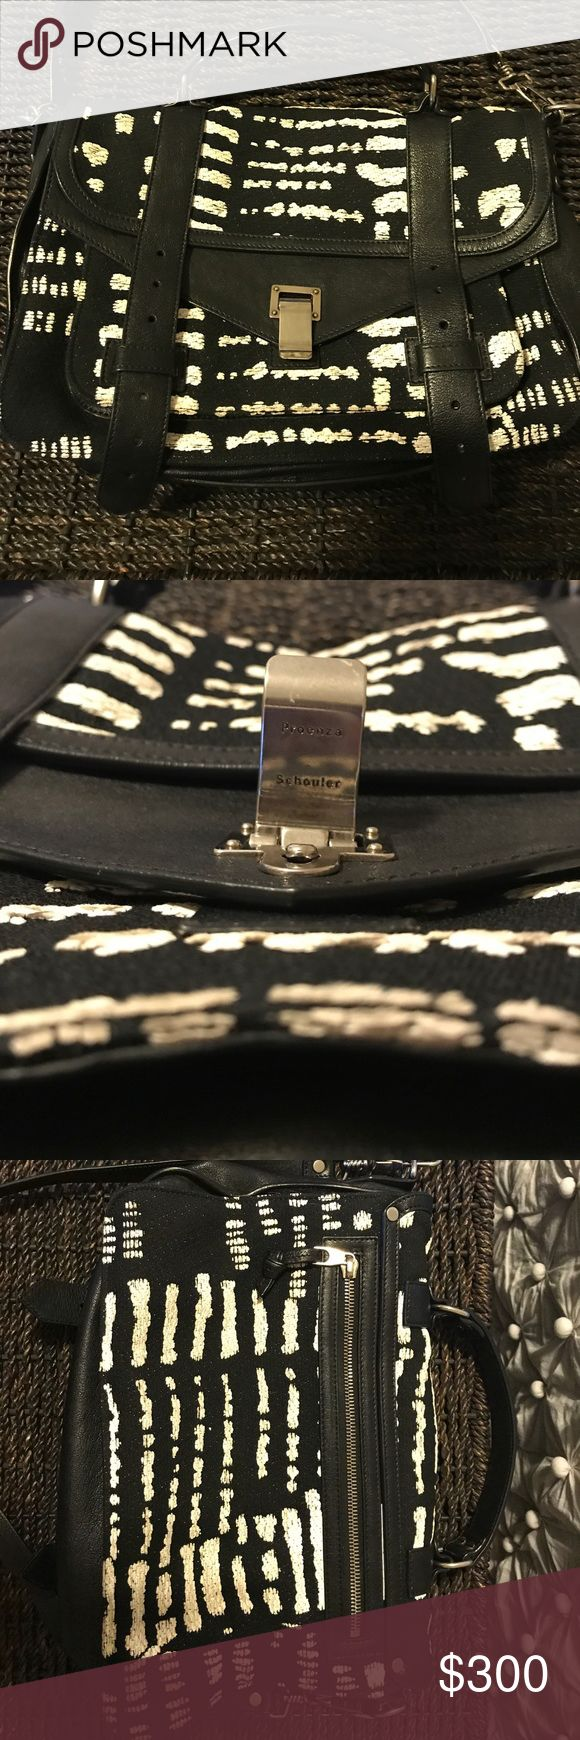 Proenza Schouler Ps1 Tiny Tweed Black/White Proenza Schouler Ps1 In Black And White Tweed Fabric And Black Leather. Bag Is In amazing condition!  Comes with duster. Proenza Schouler Bags Shoulder Bags